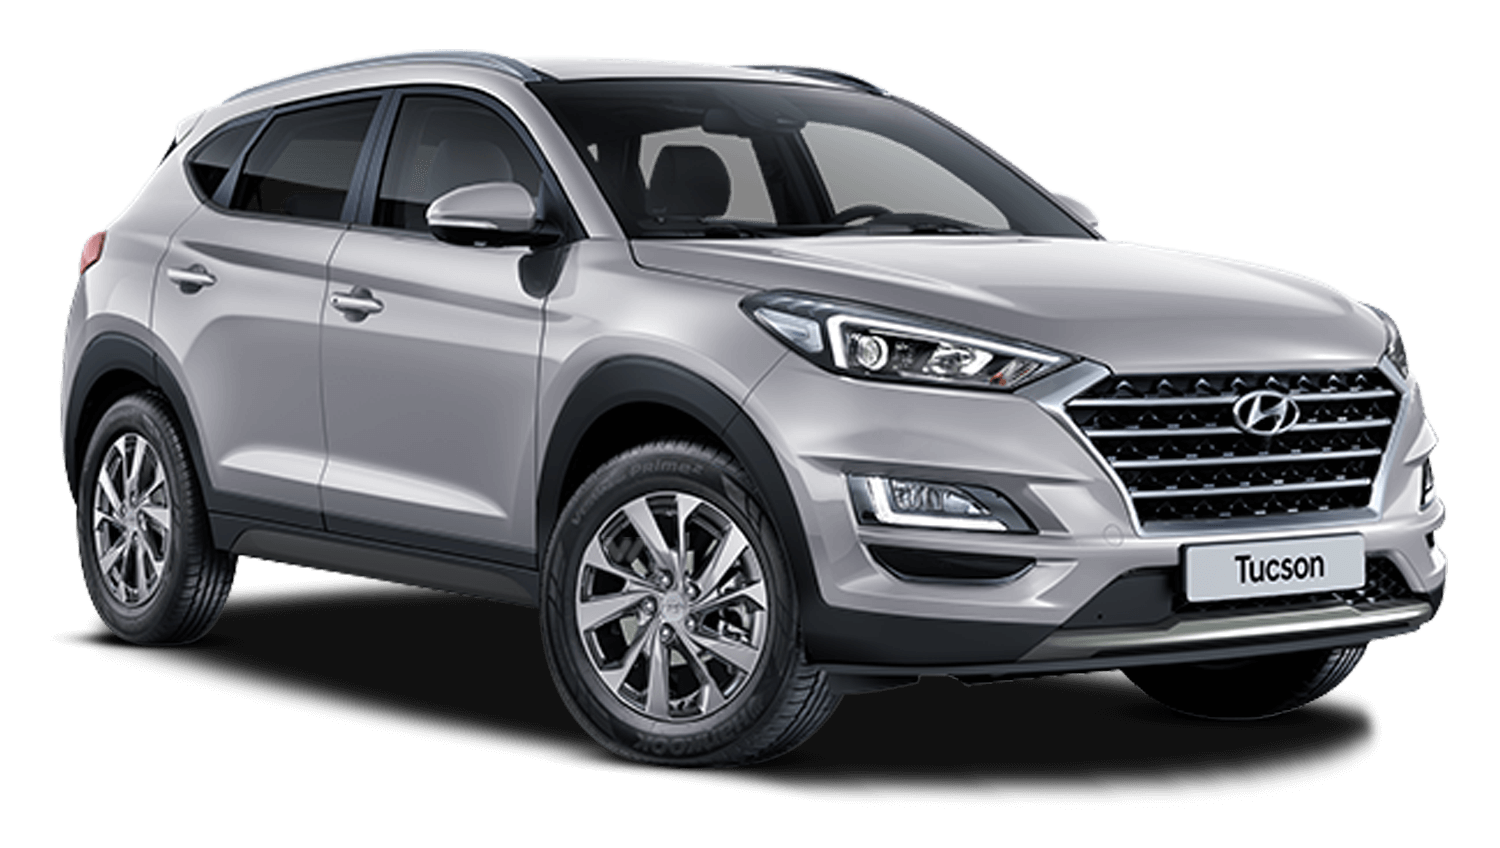 Tucson New Car Offers